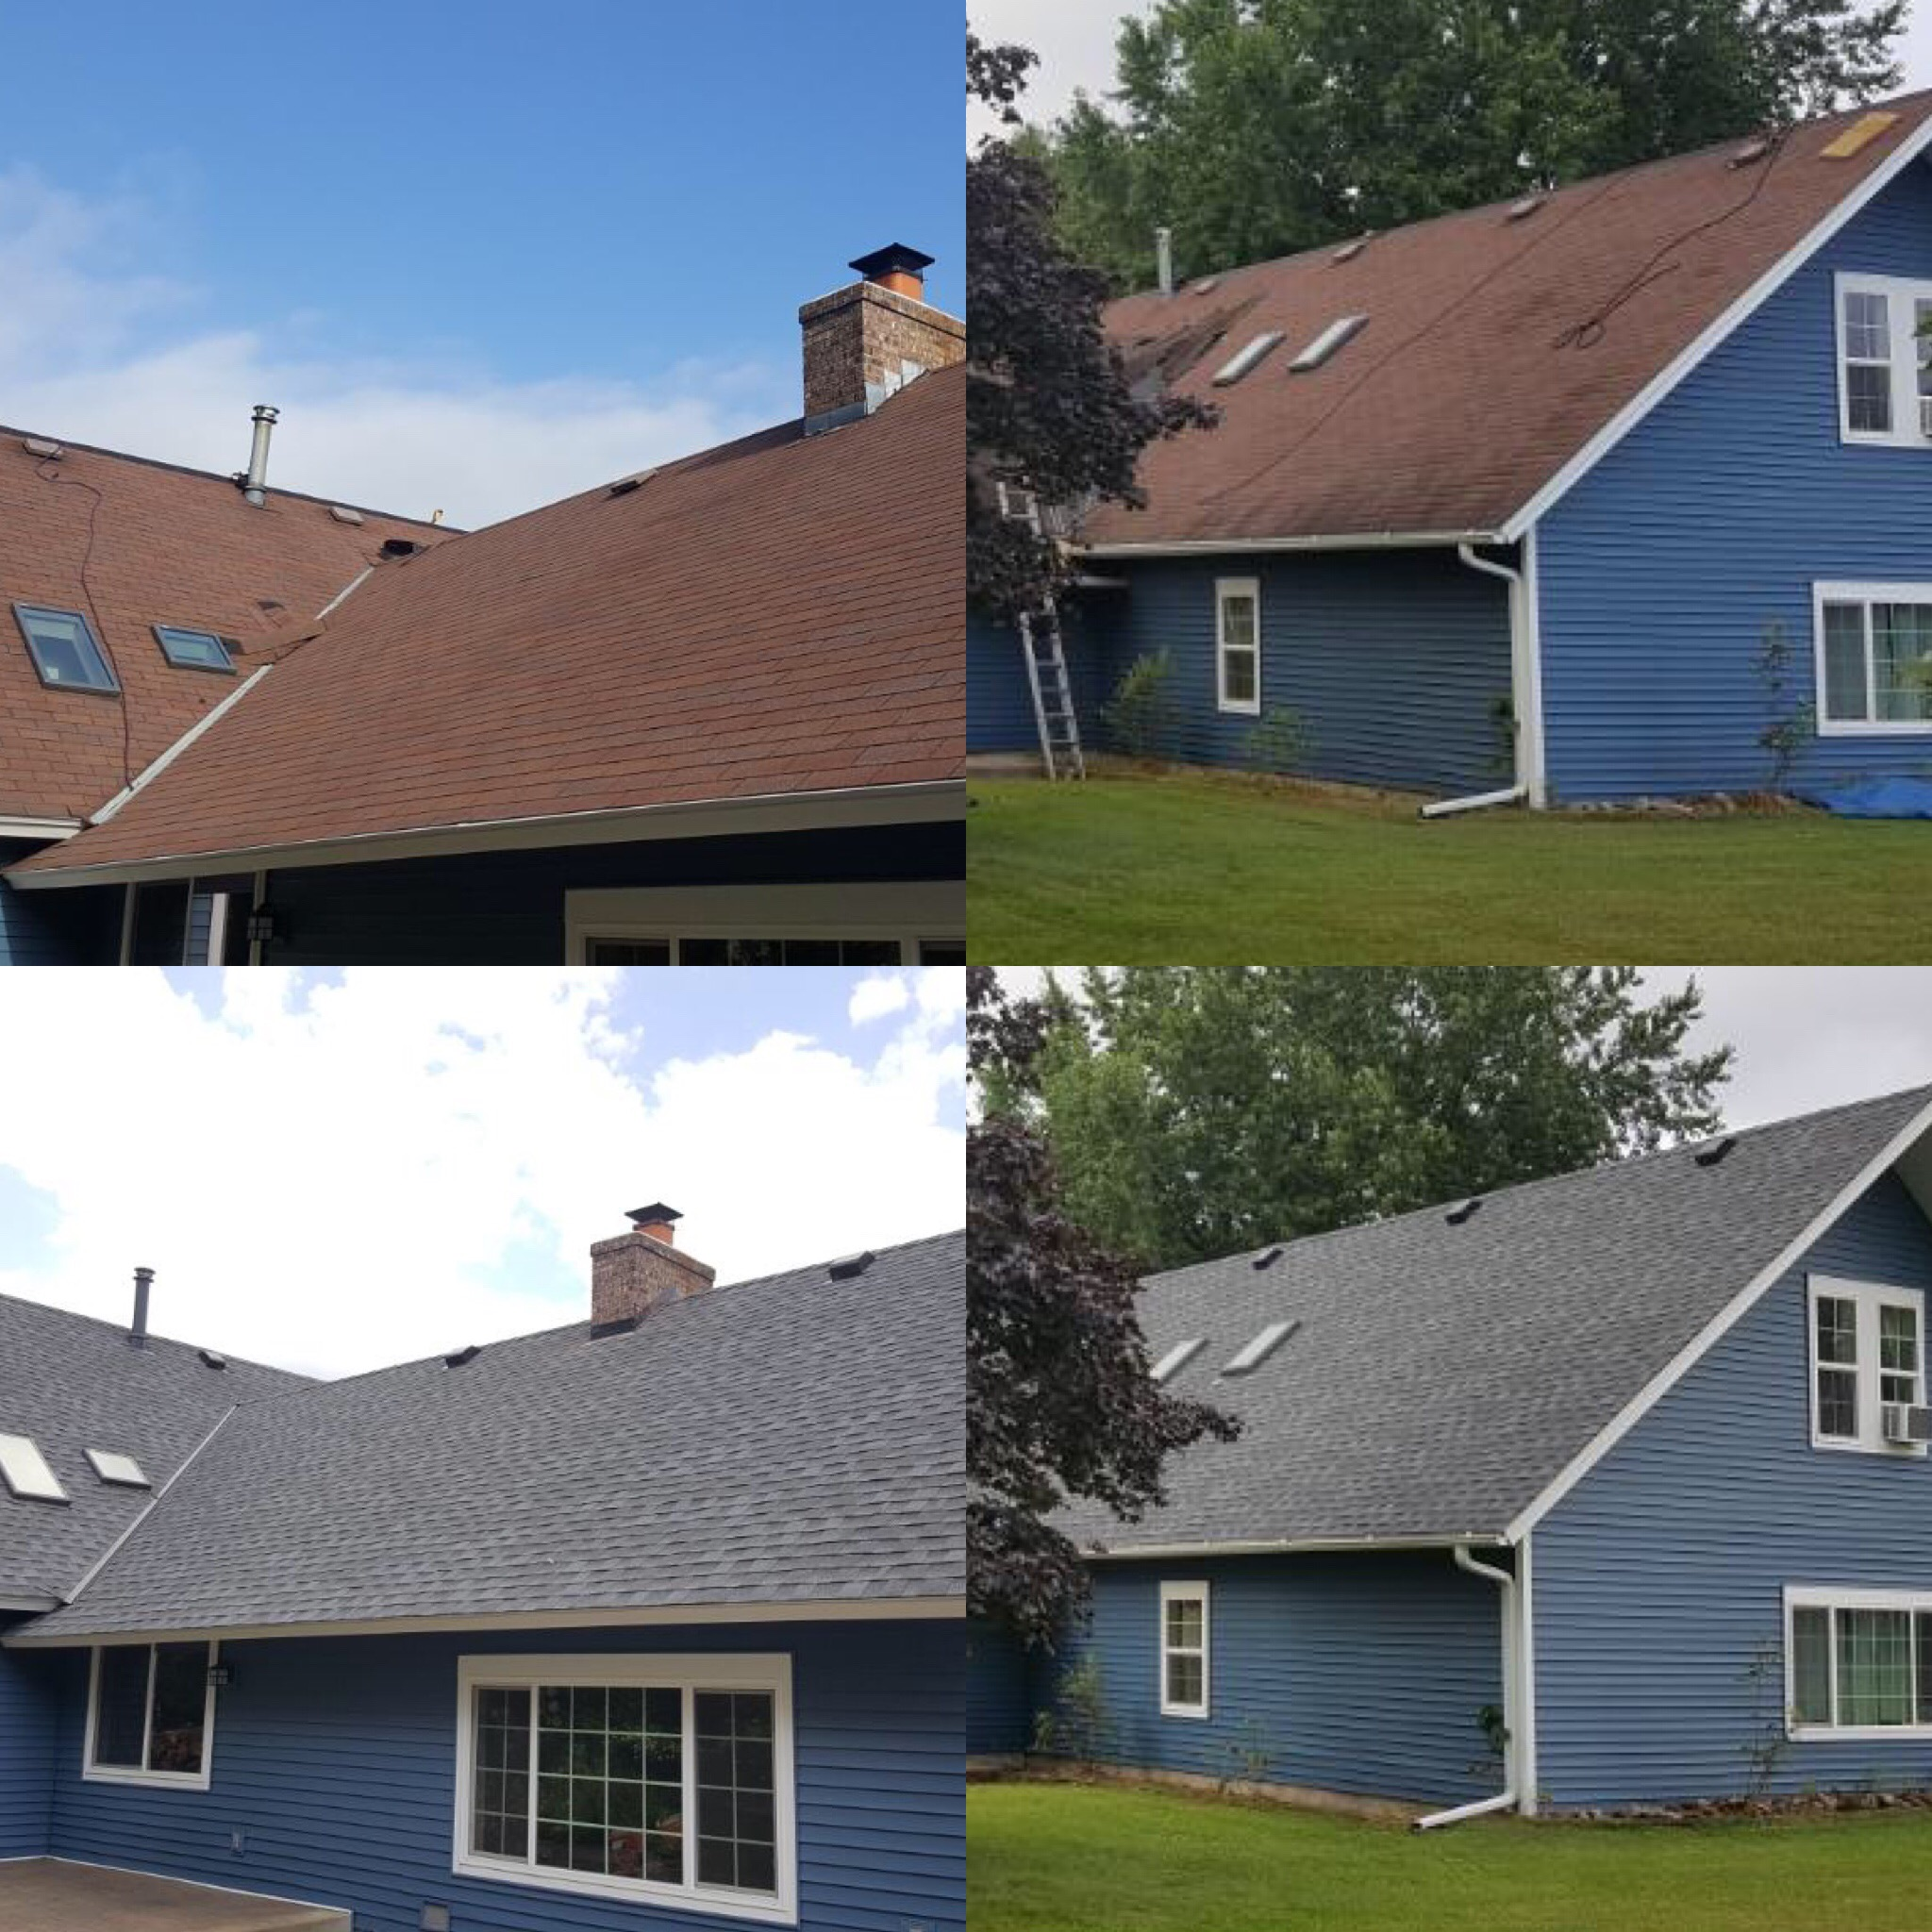 New Roof August 2019 (Before & Afters)